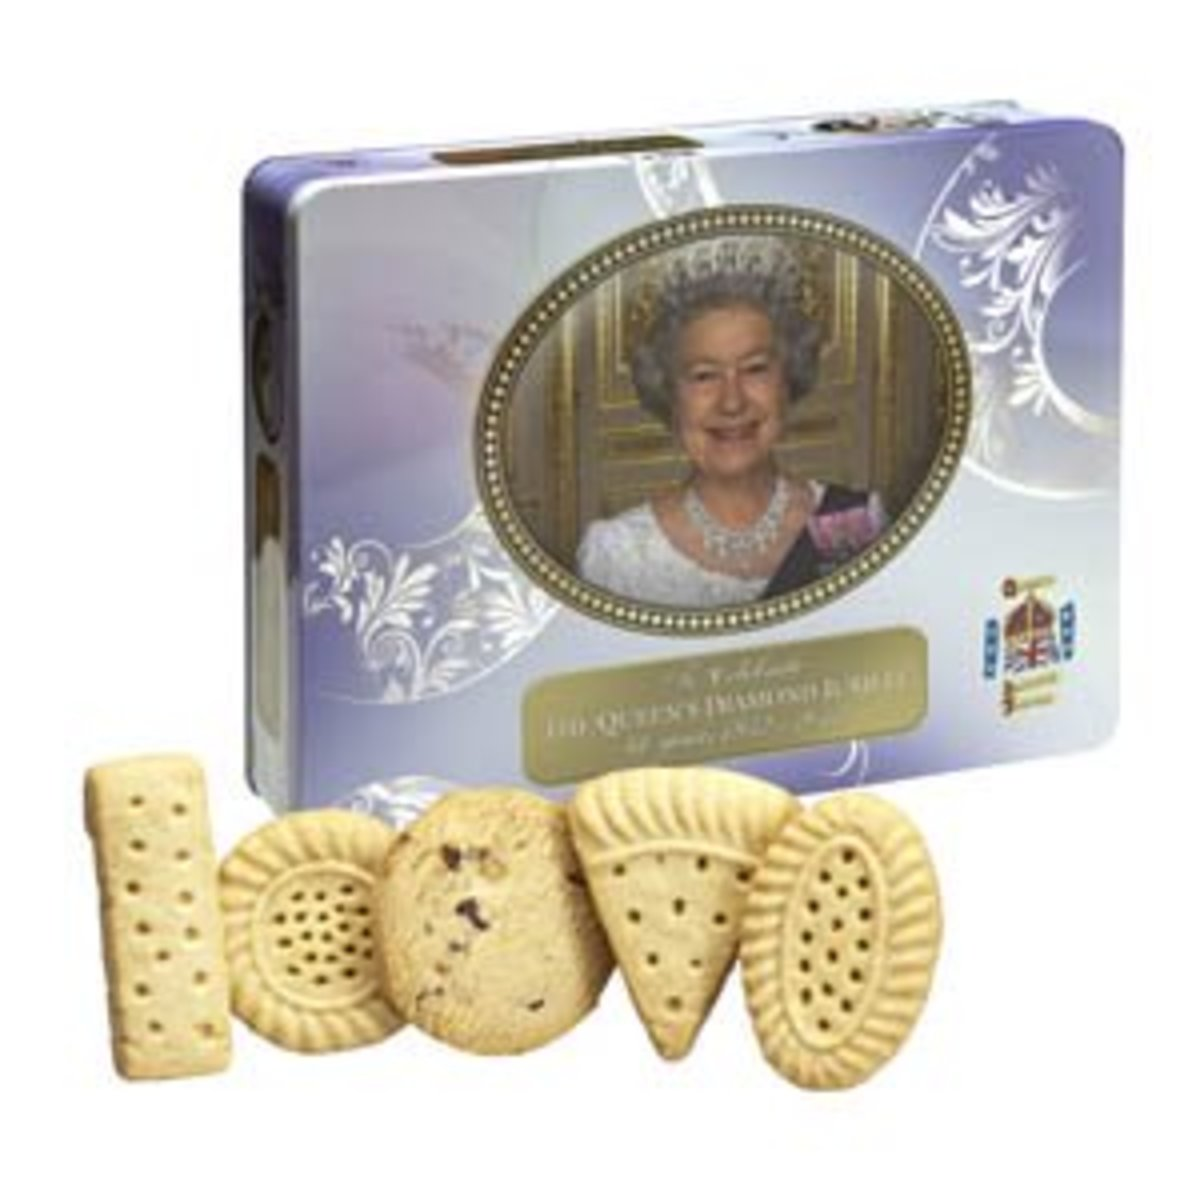 The limited Diamond Jubilee edition shortbread collection made by Walkers